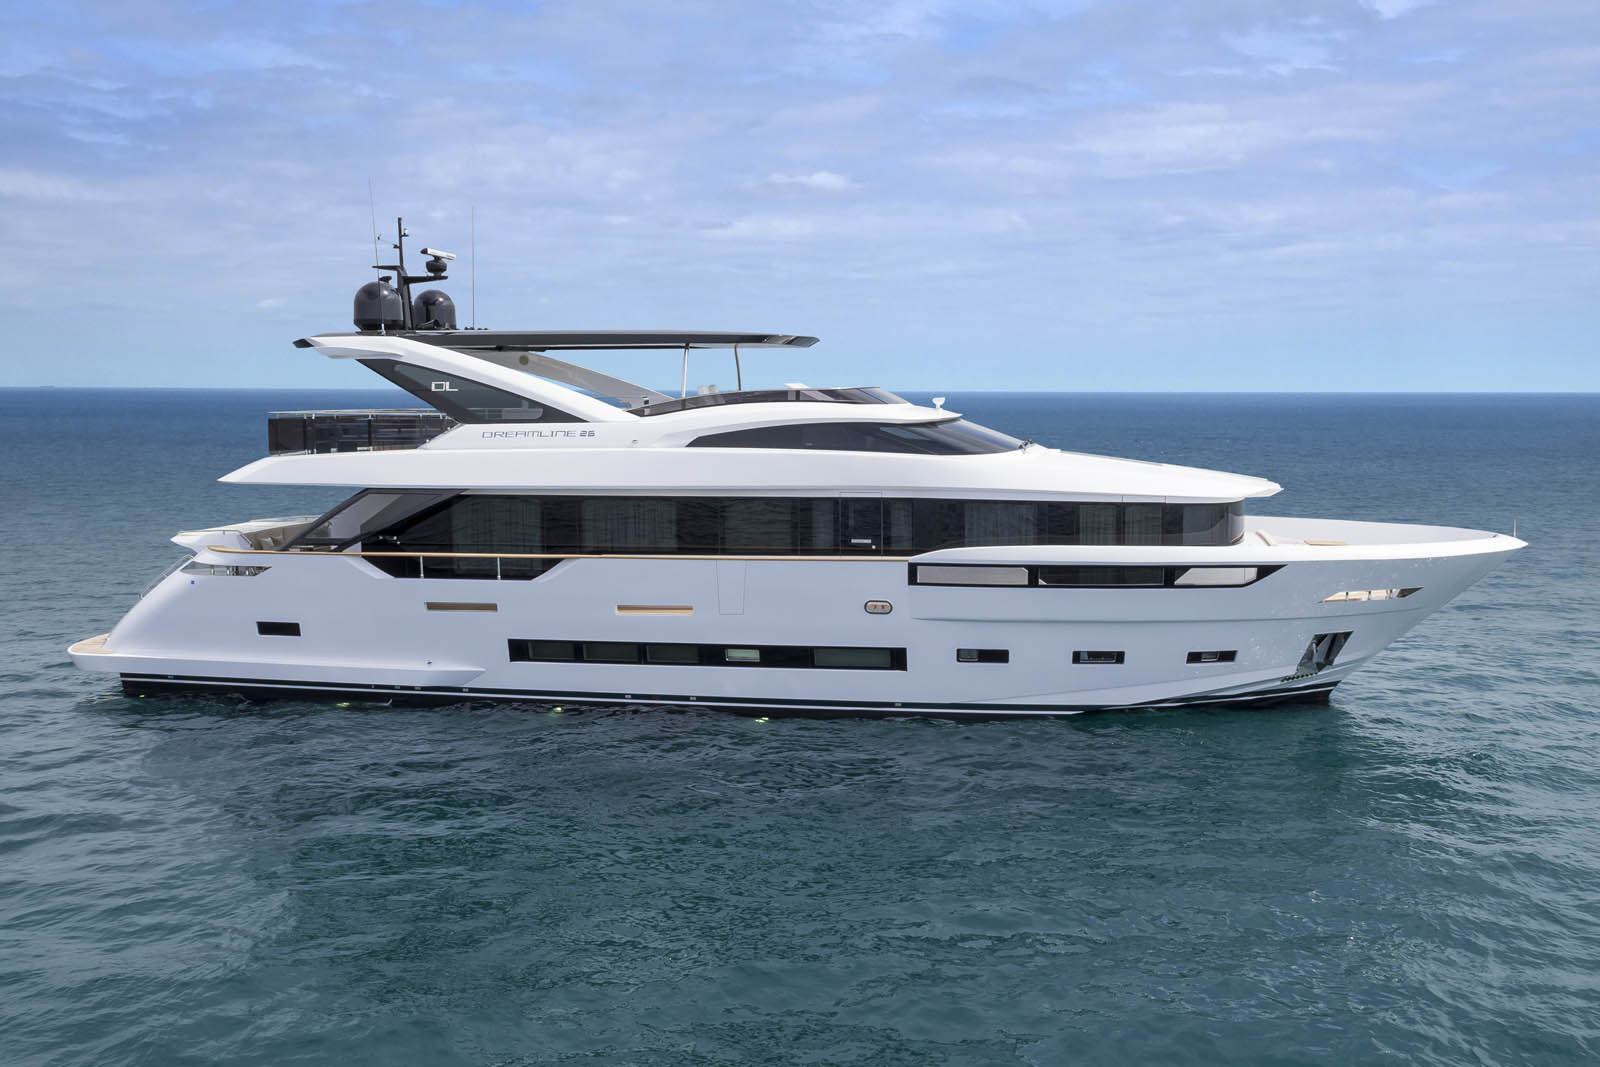 dl yachts dreamline 26 for sale in italy for 5 950 000. Black Bedroom Furniture Sets. Home Design Ideas